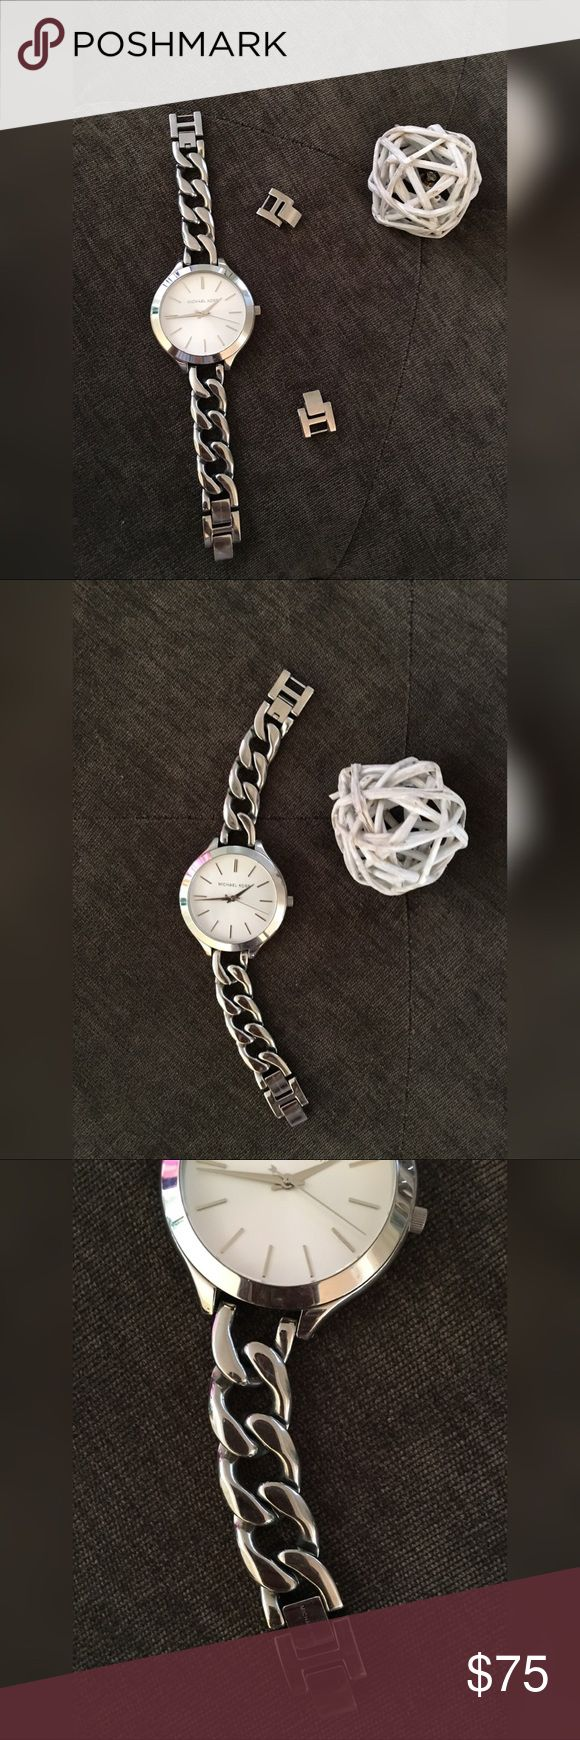 Michael Kors Silver Watch ✨Comes with additional links to expand ✨Needs new battery KORS Michael Kors Accessories Watches